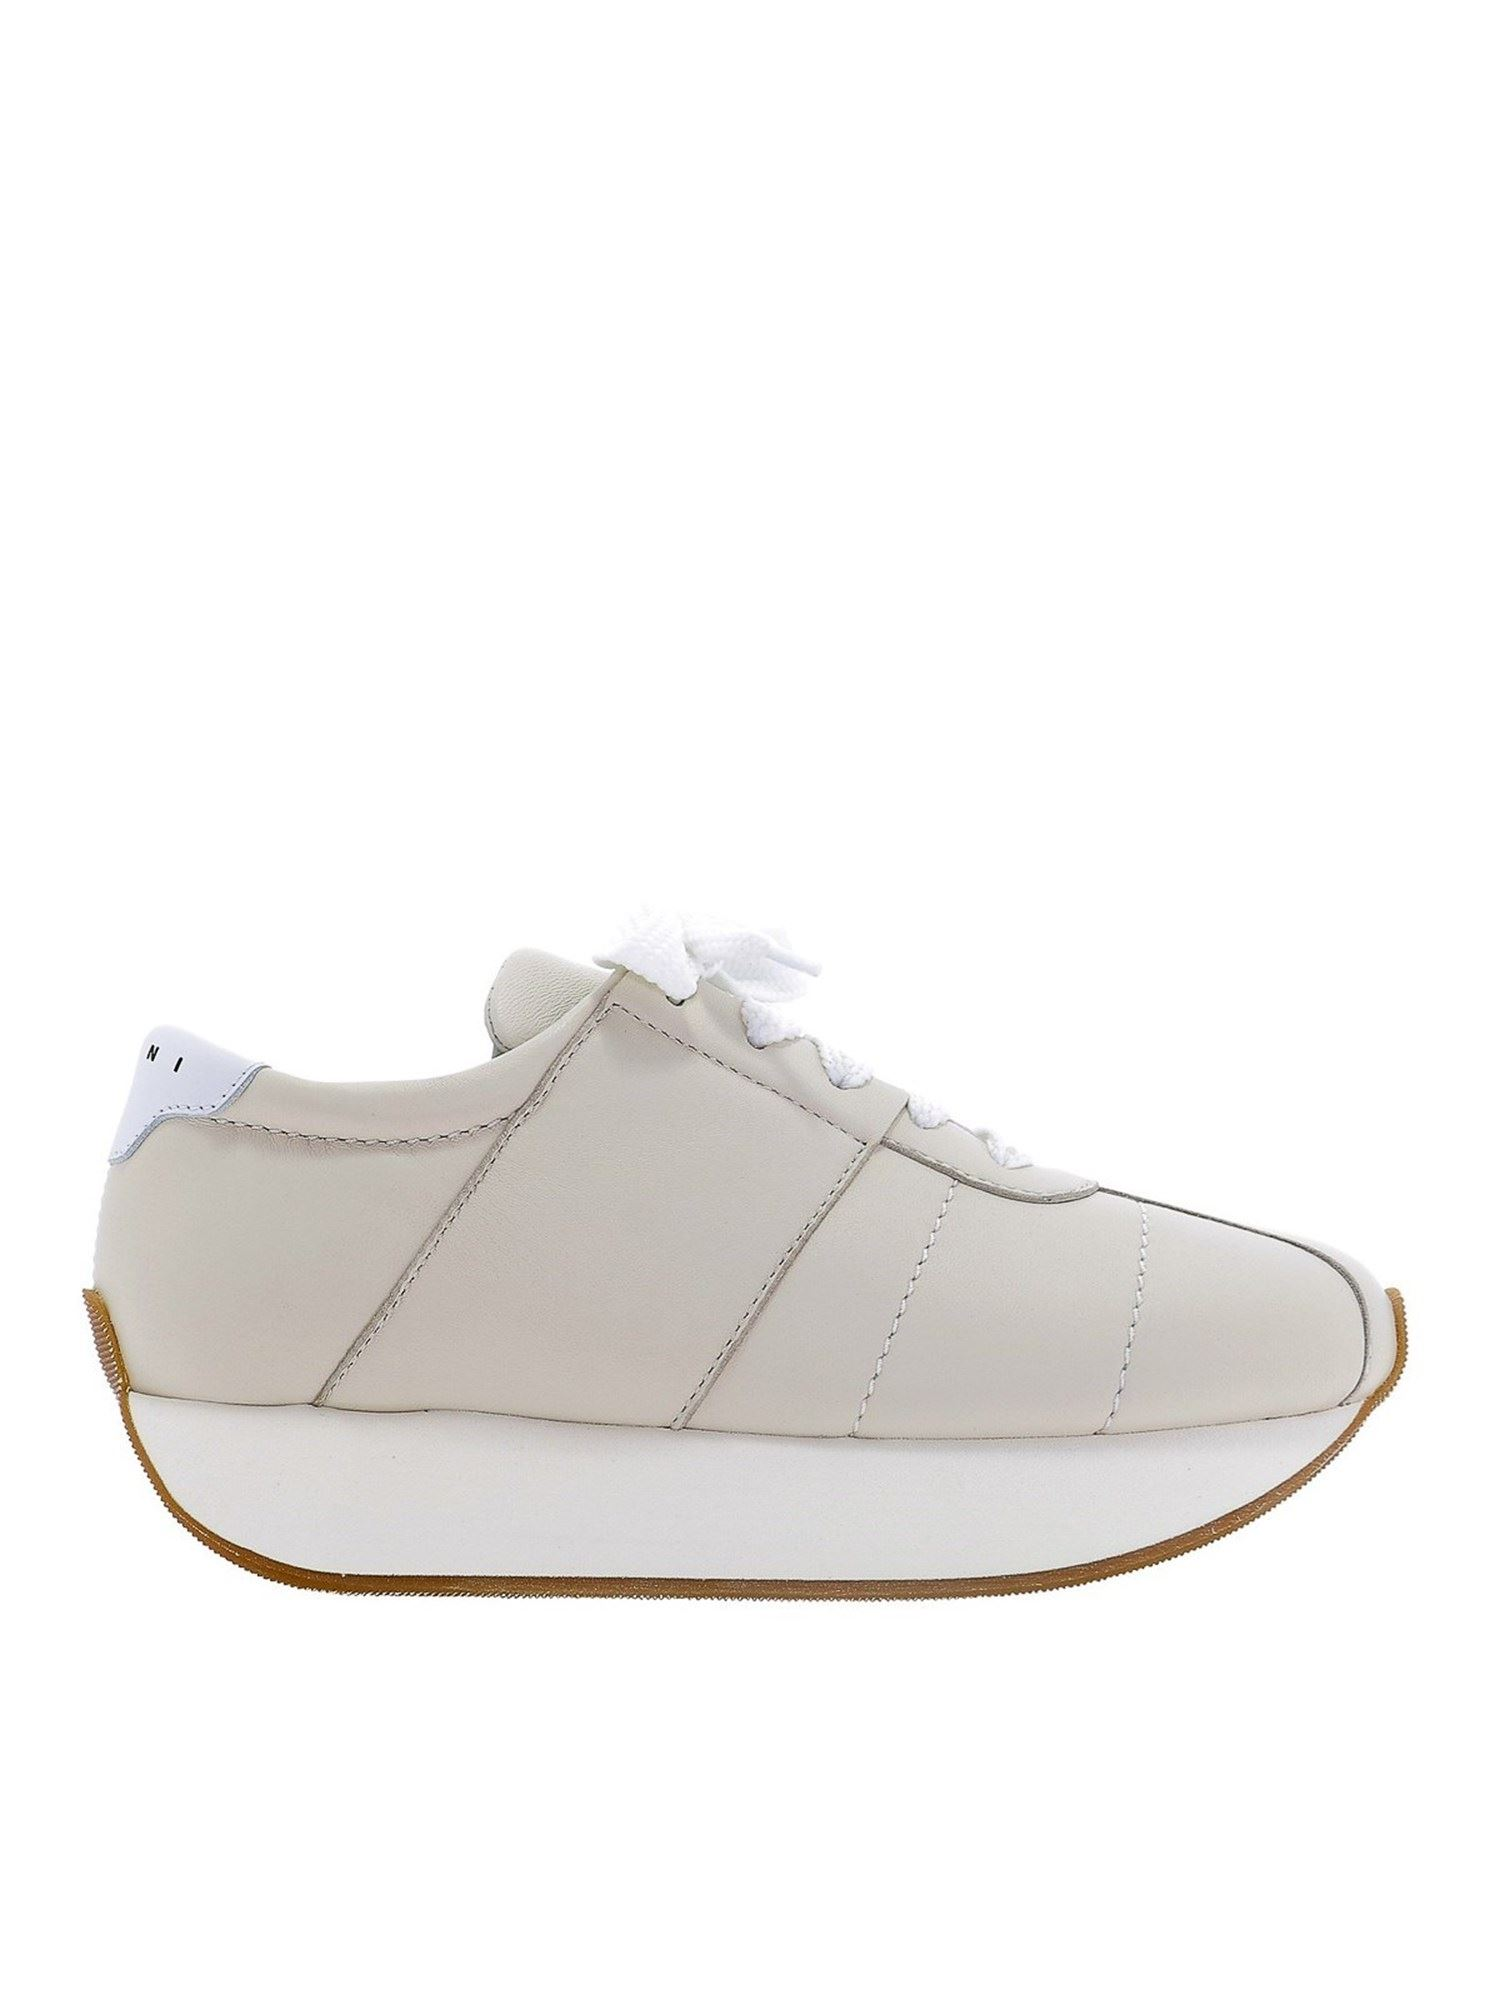 Marni Leathers BIG FOOT SNEAKERS IN BEIGE